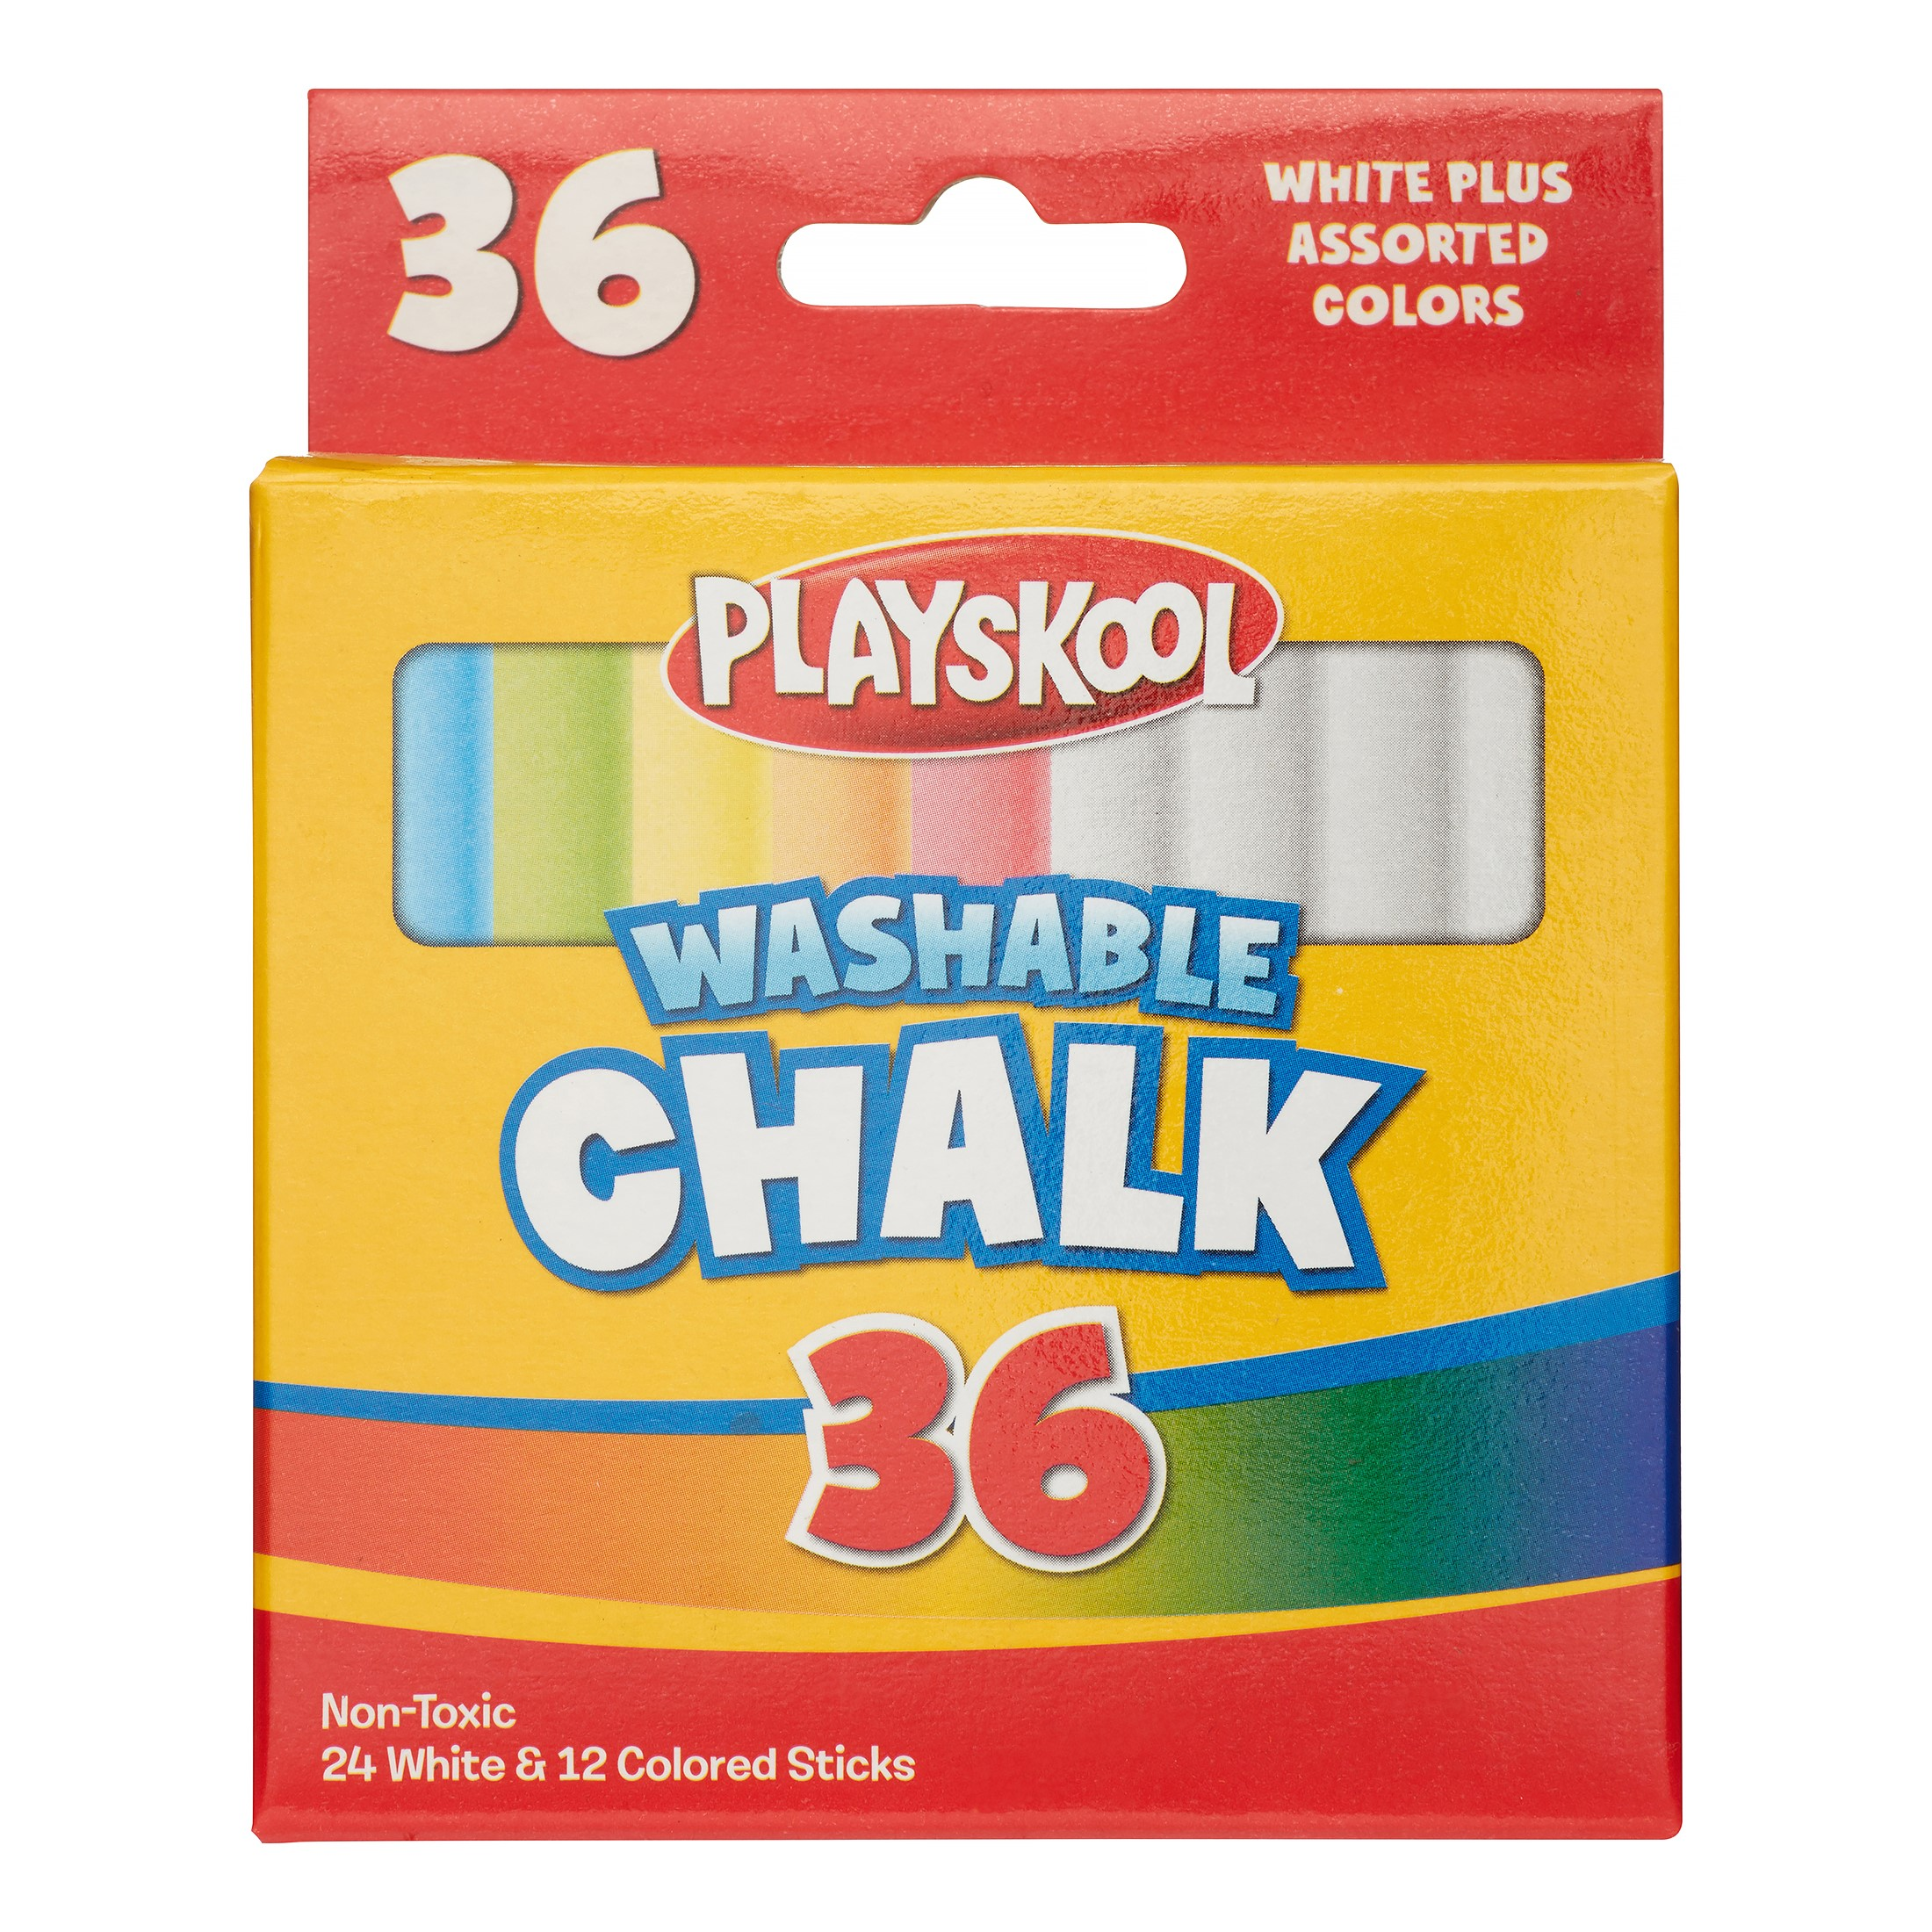 Playskool Washable Chalk, White And Assorted Colors, 36 Ct